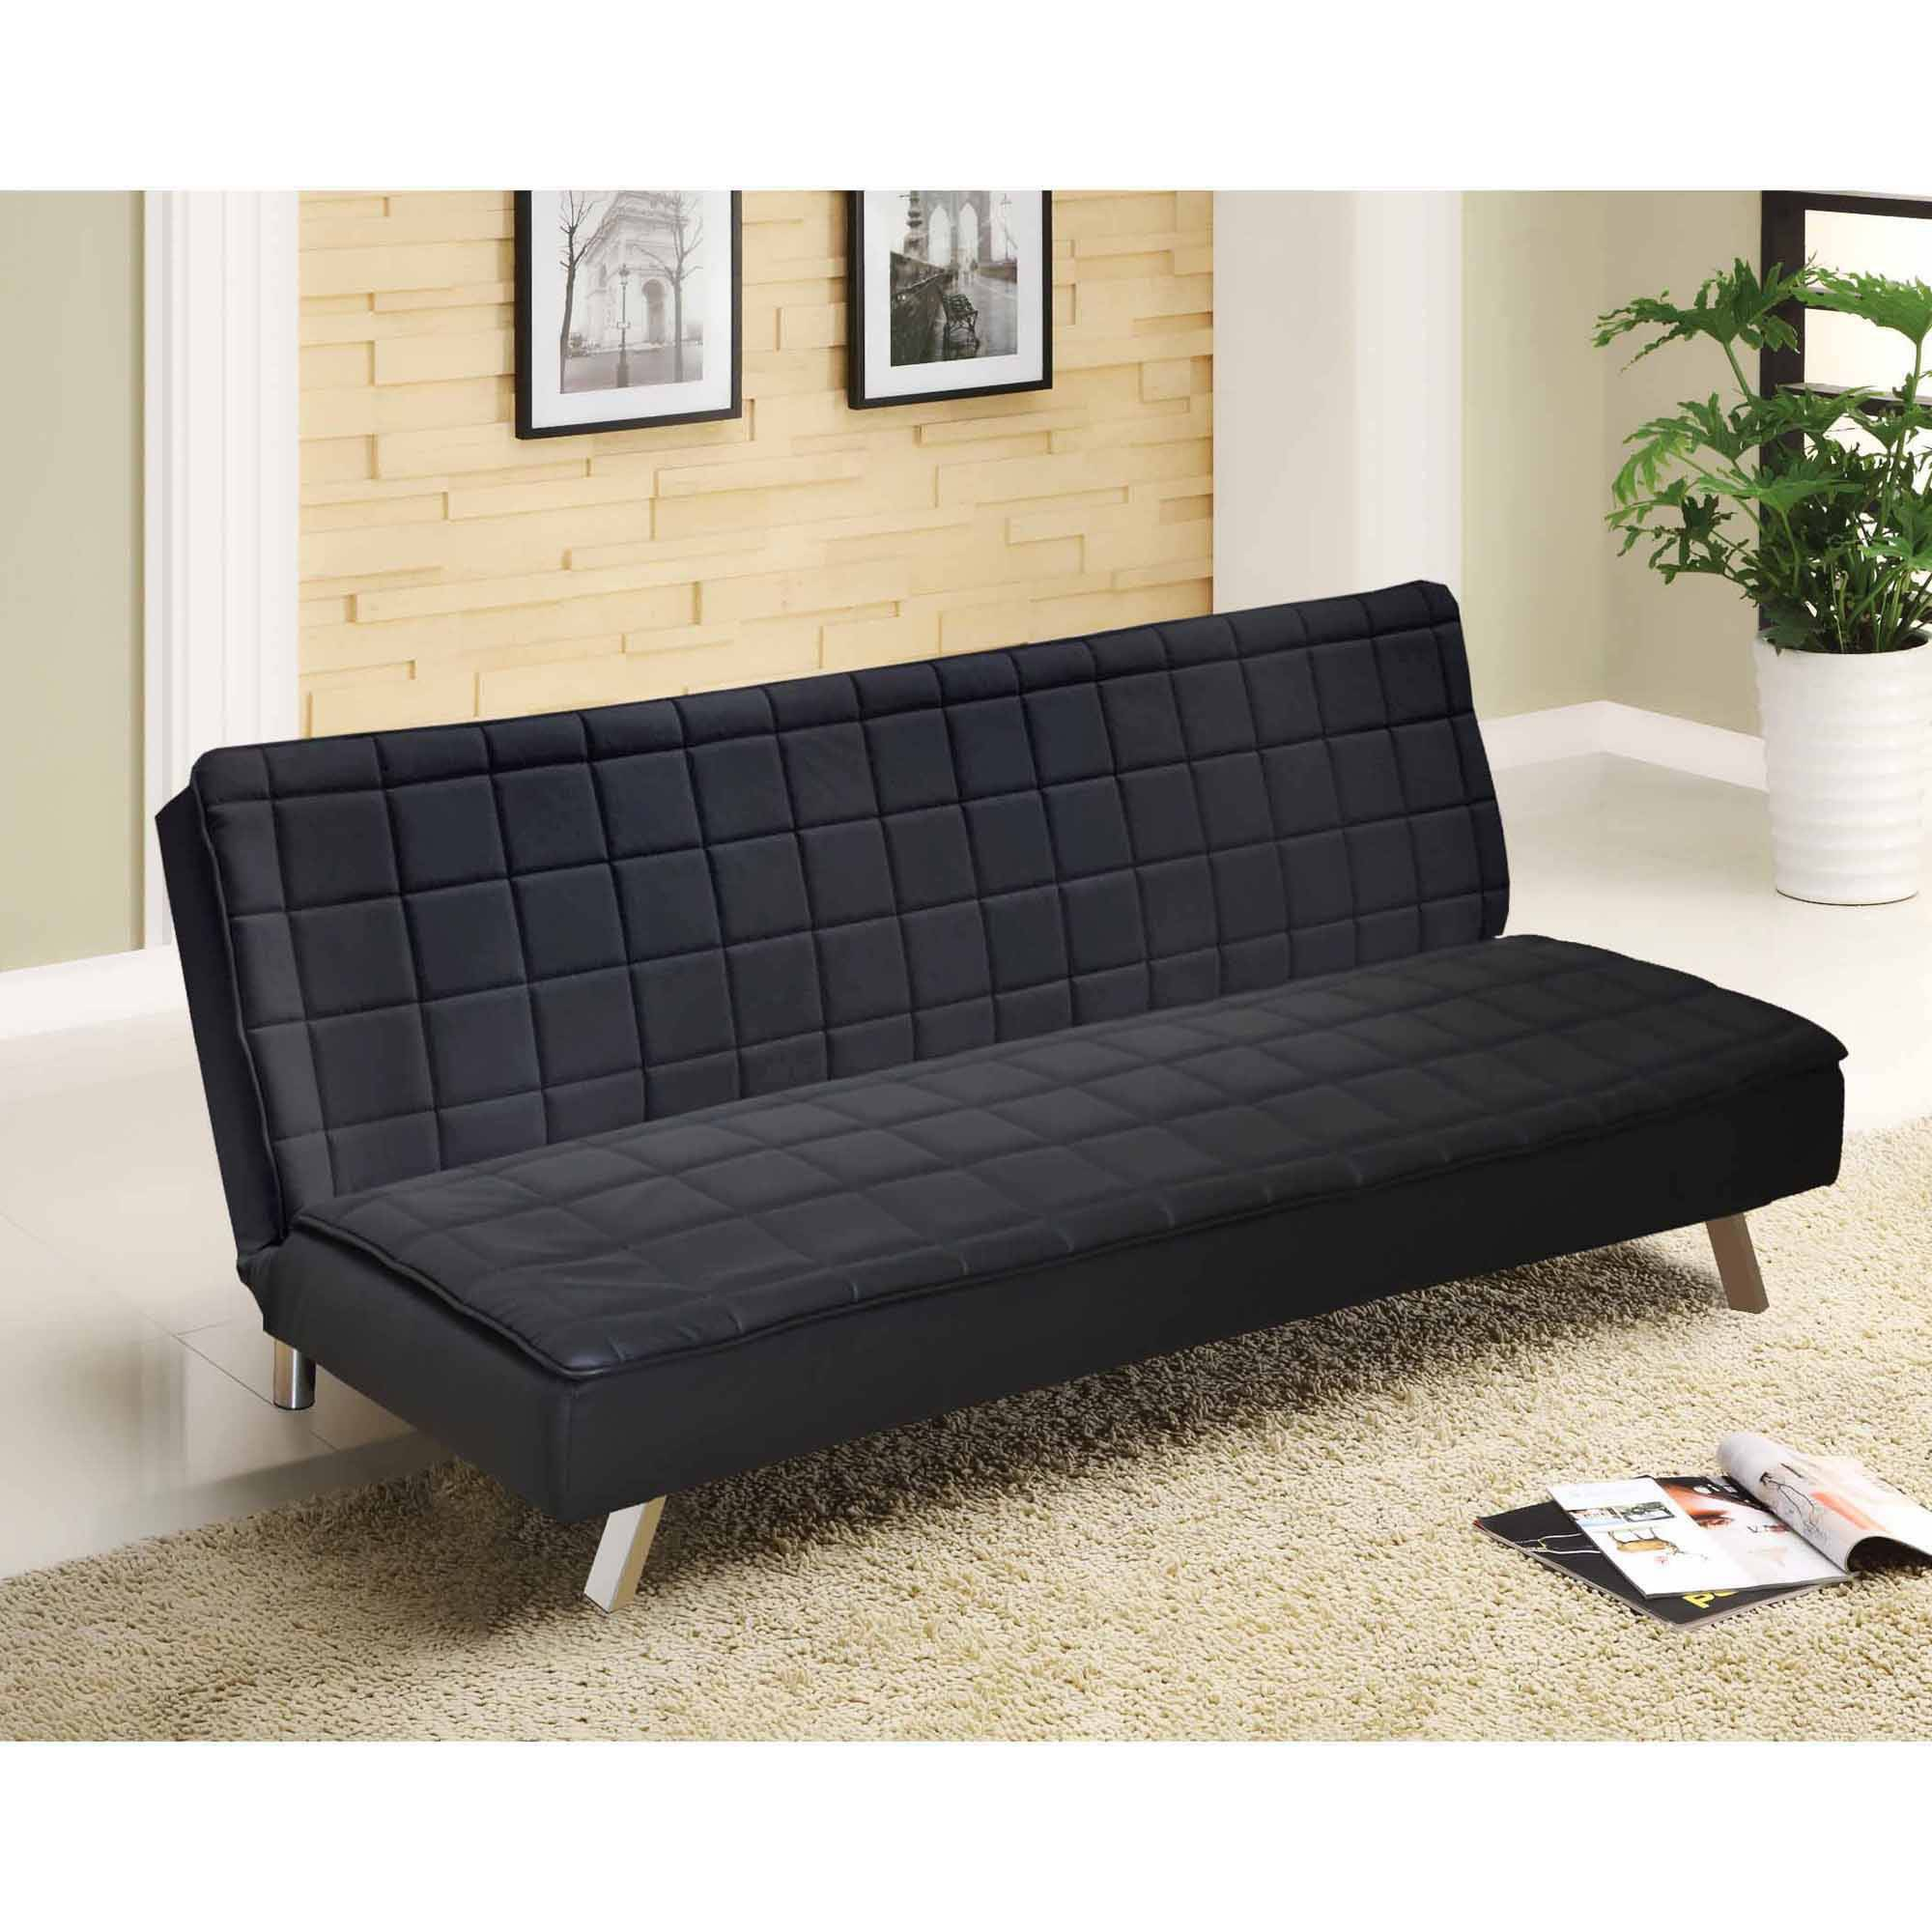 Urban Hilary Memory Foam Faux Leather Futon Multiple Colors Com